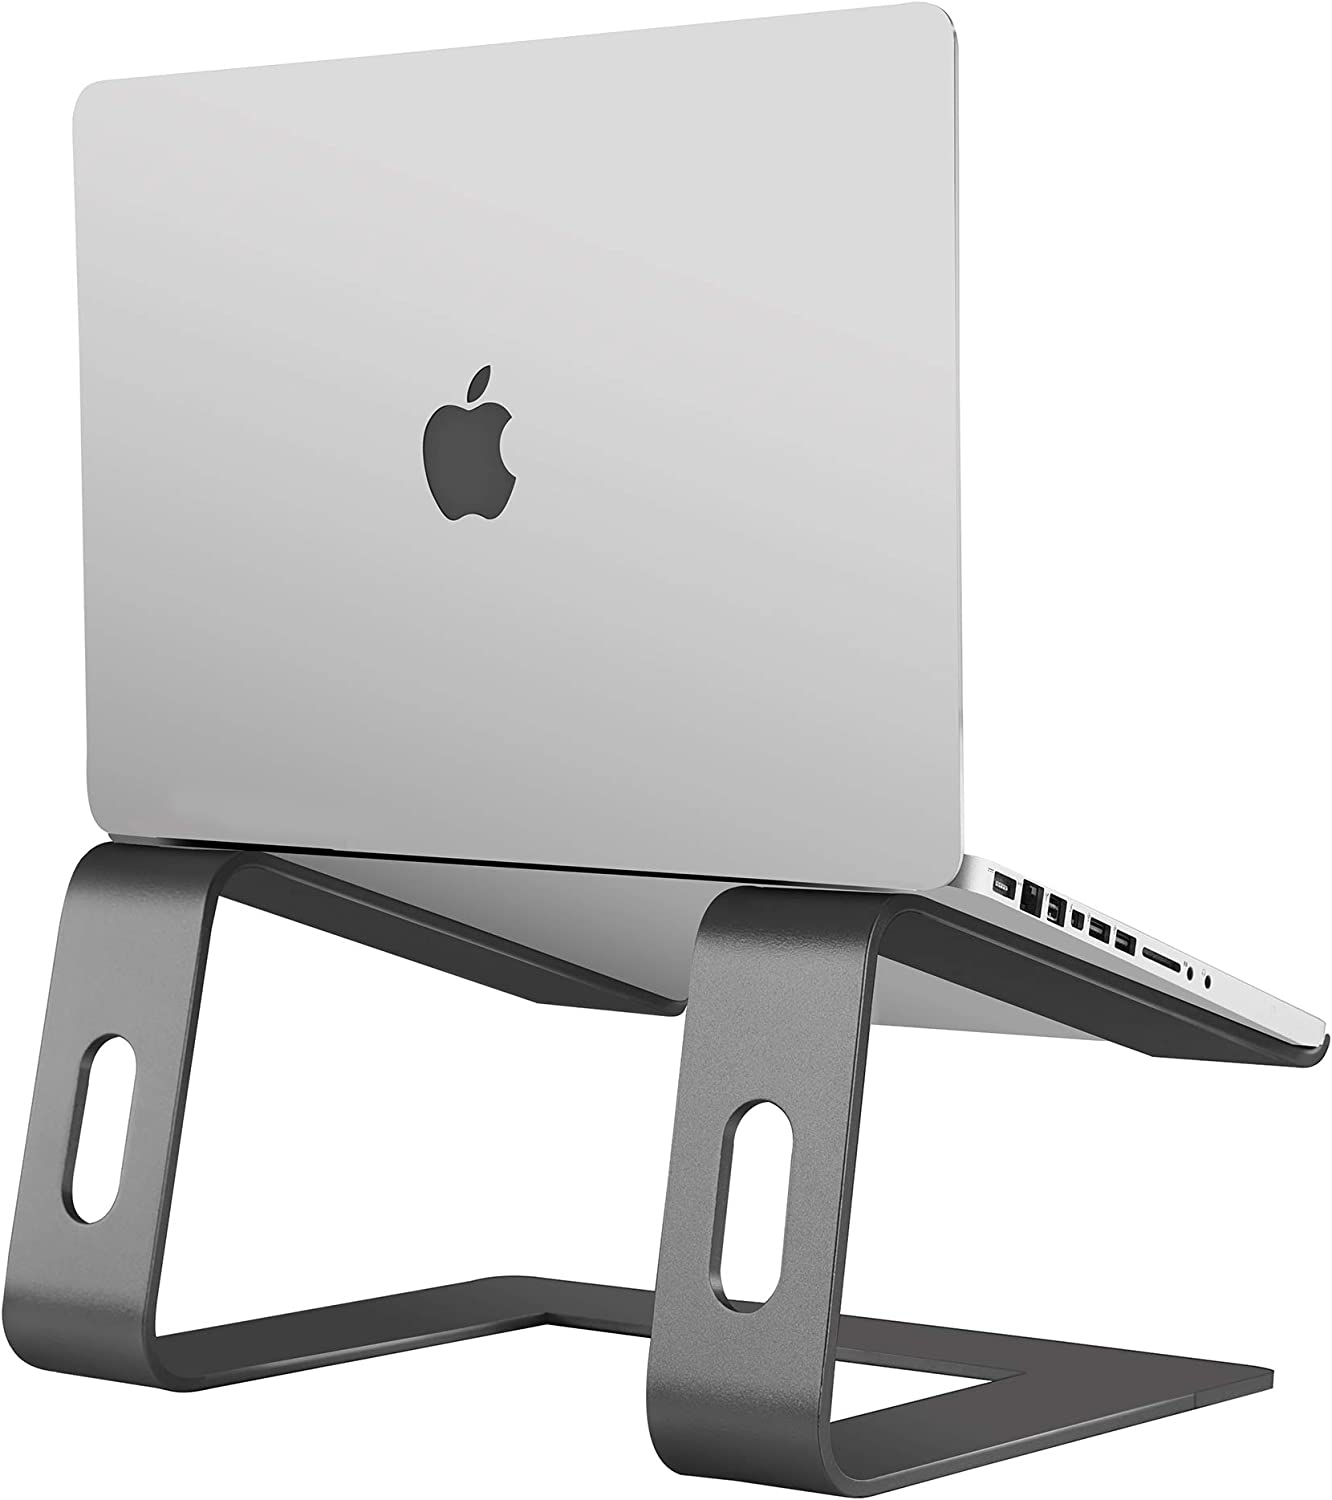 Orionstar Laptop Stand Portable Aluminum Laptop Riser Compatible with Apple Mac MacBook Air Pro 10 to 15.6 Inch Notebook Computer, Detachable Ergonomic Elevator Holder, Space Grey